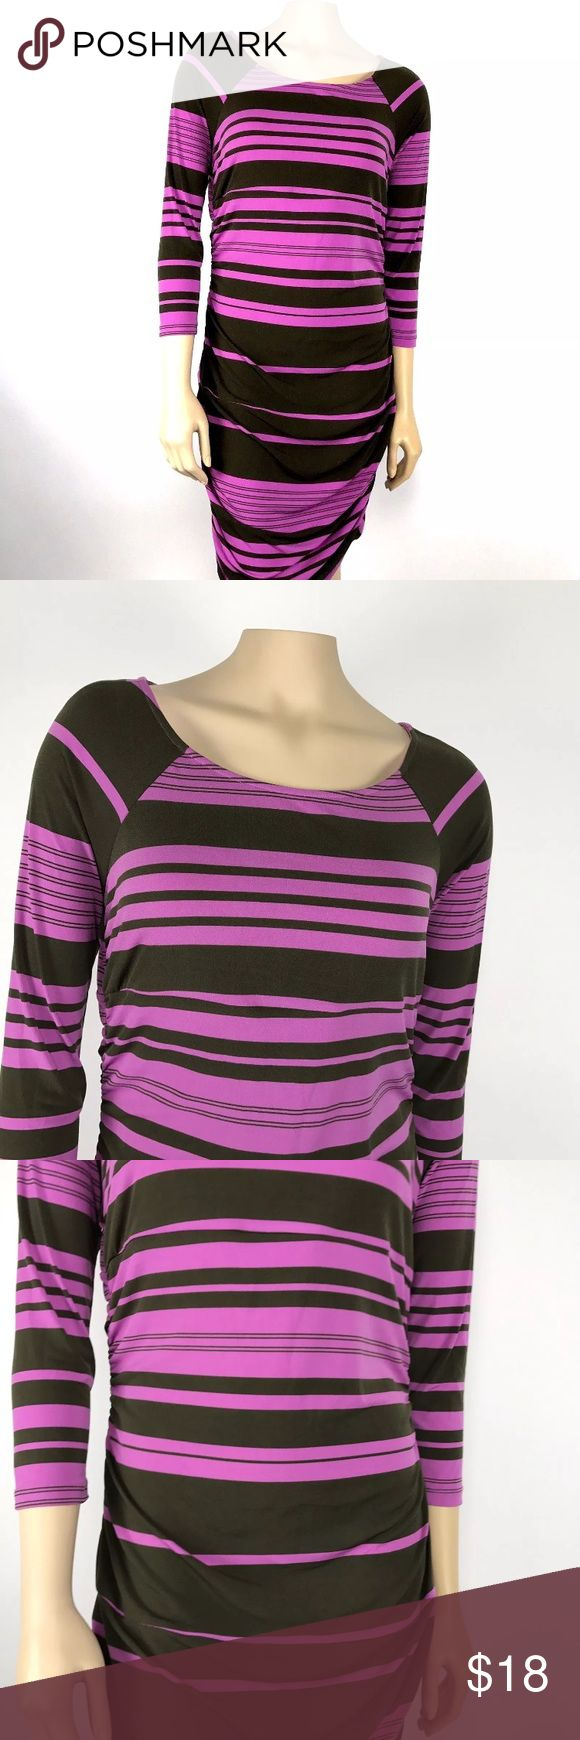 "Sofia Vergara Ruched Dress Women's size large purple & brown striped Sofia Vergara ¾ length sleeve, ruched stretch dress. 95% polyester, 5% spandex.        Measurements (flat lay): Armpit to armpit – 17 ½"" Length – 38""   Comes from a smoke free home!    Pre-owned. In good condition. No rips, tears, holes or stains. Sofia Vergara Dresses"